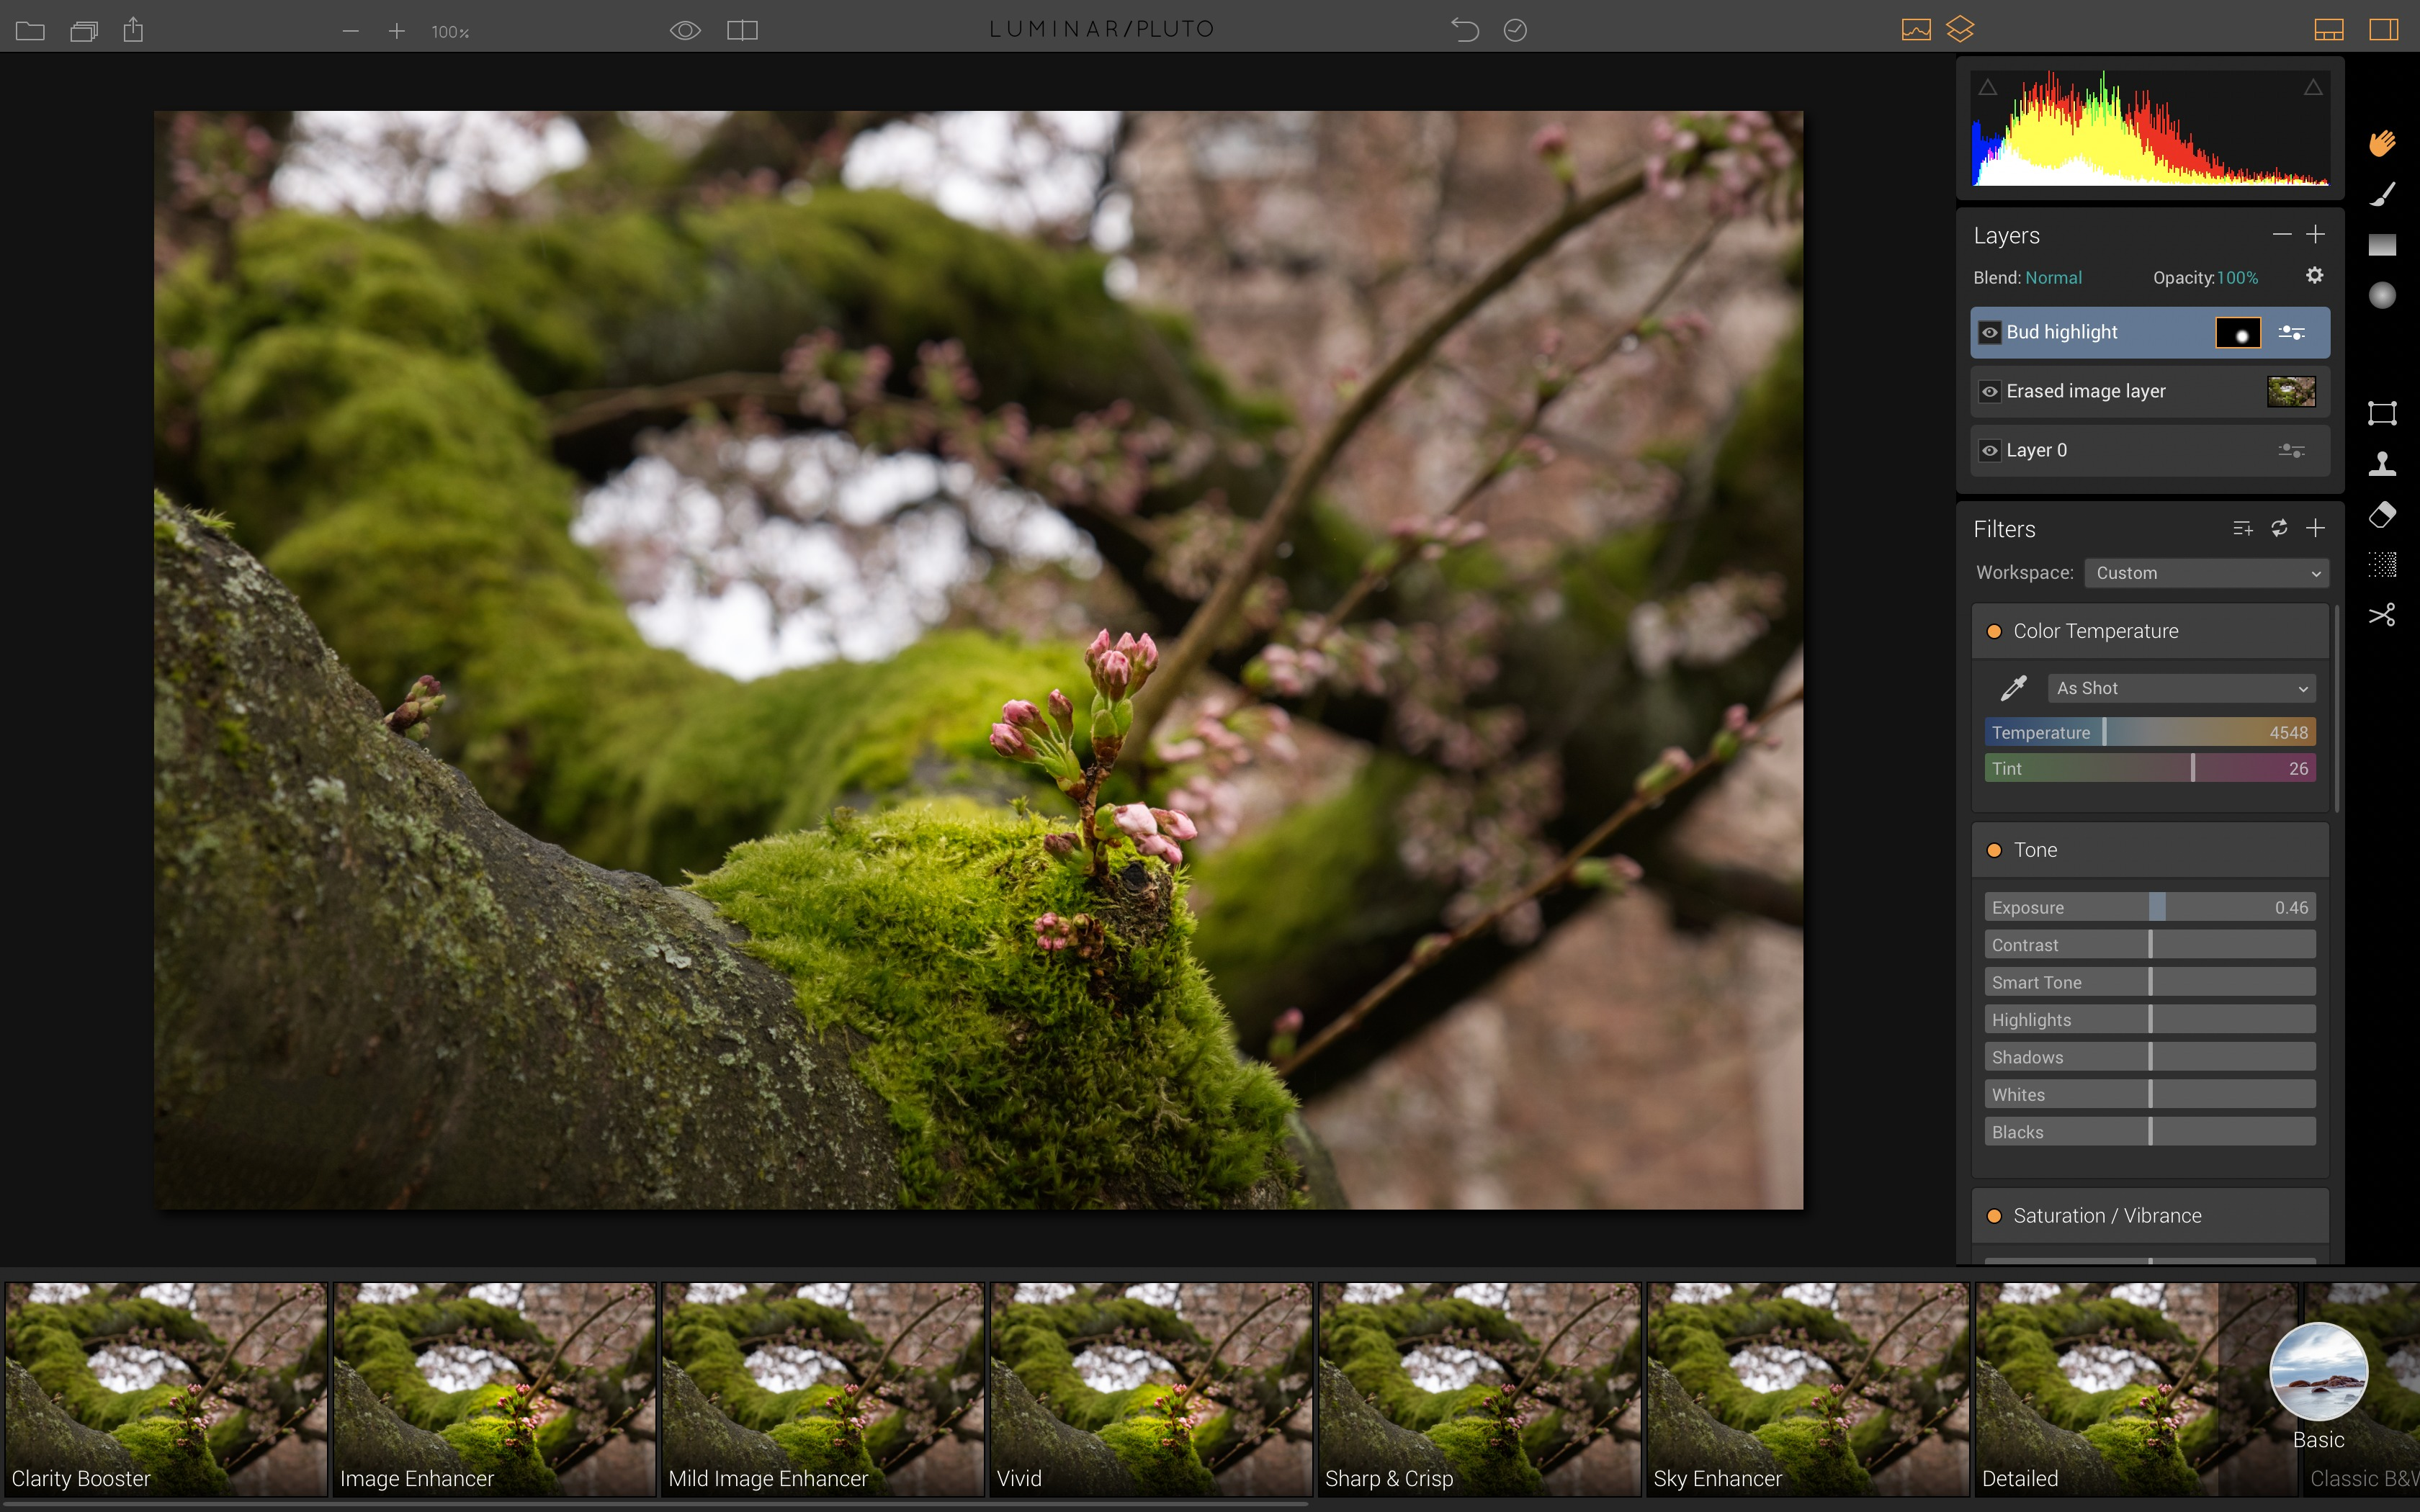 Photo Editing as One with Luminar - TidBITS